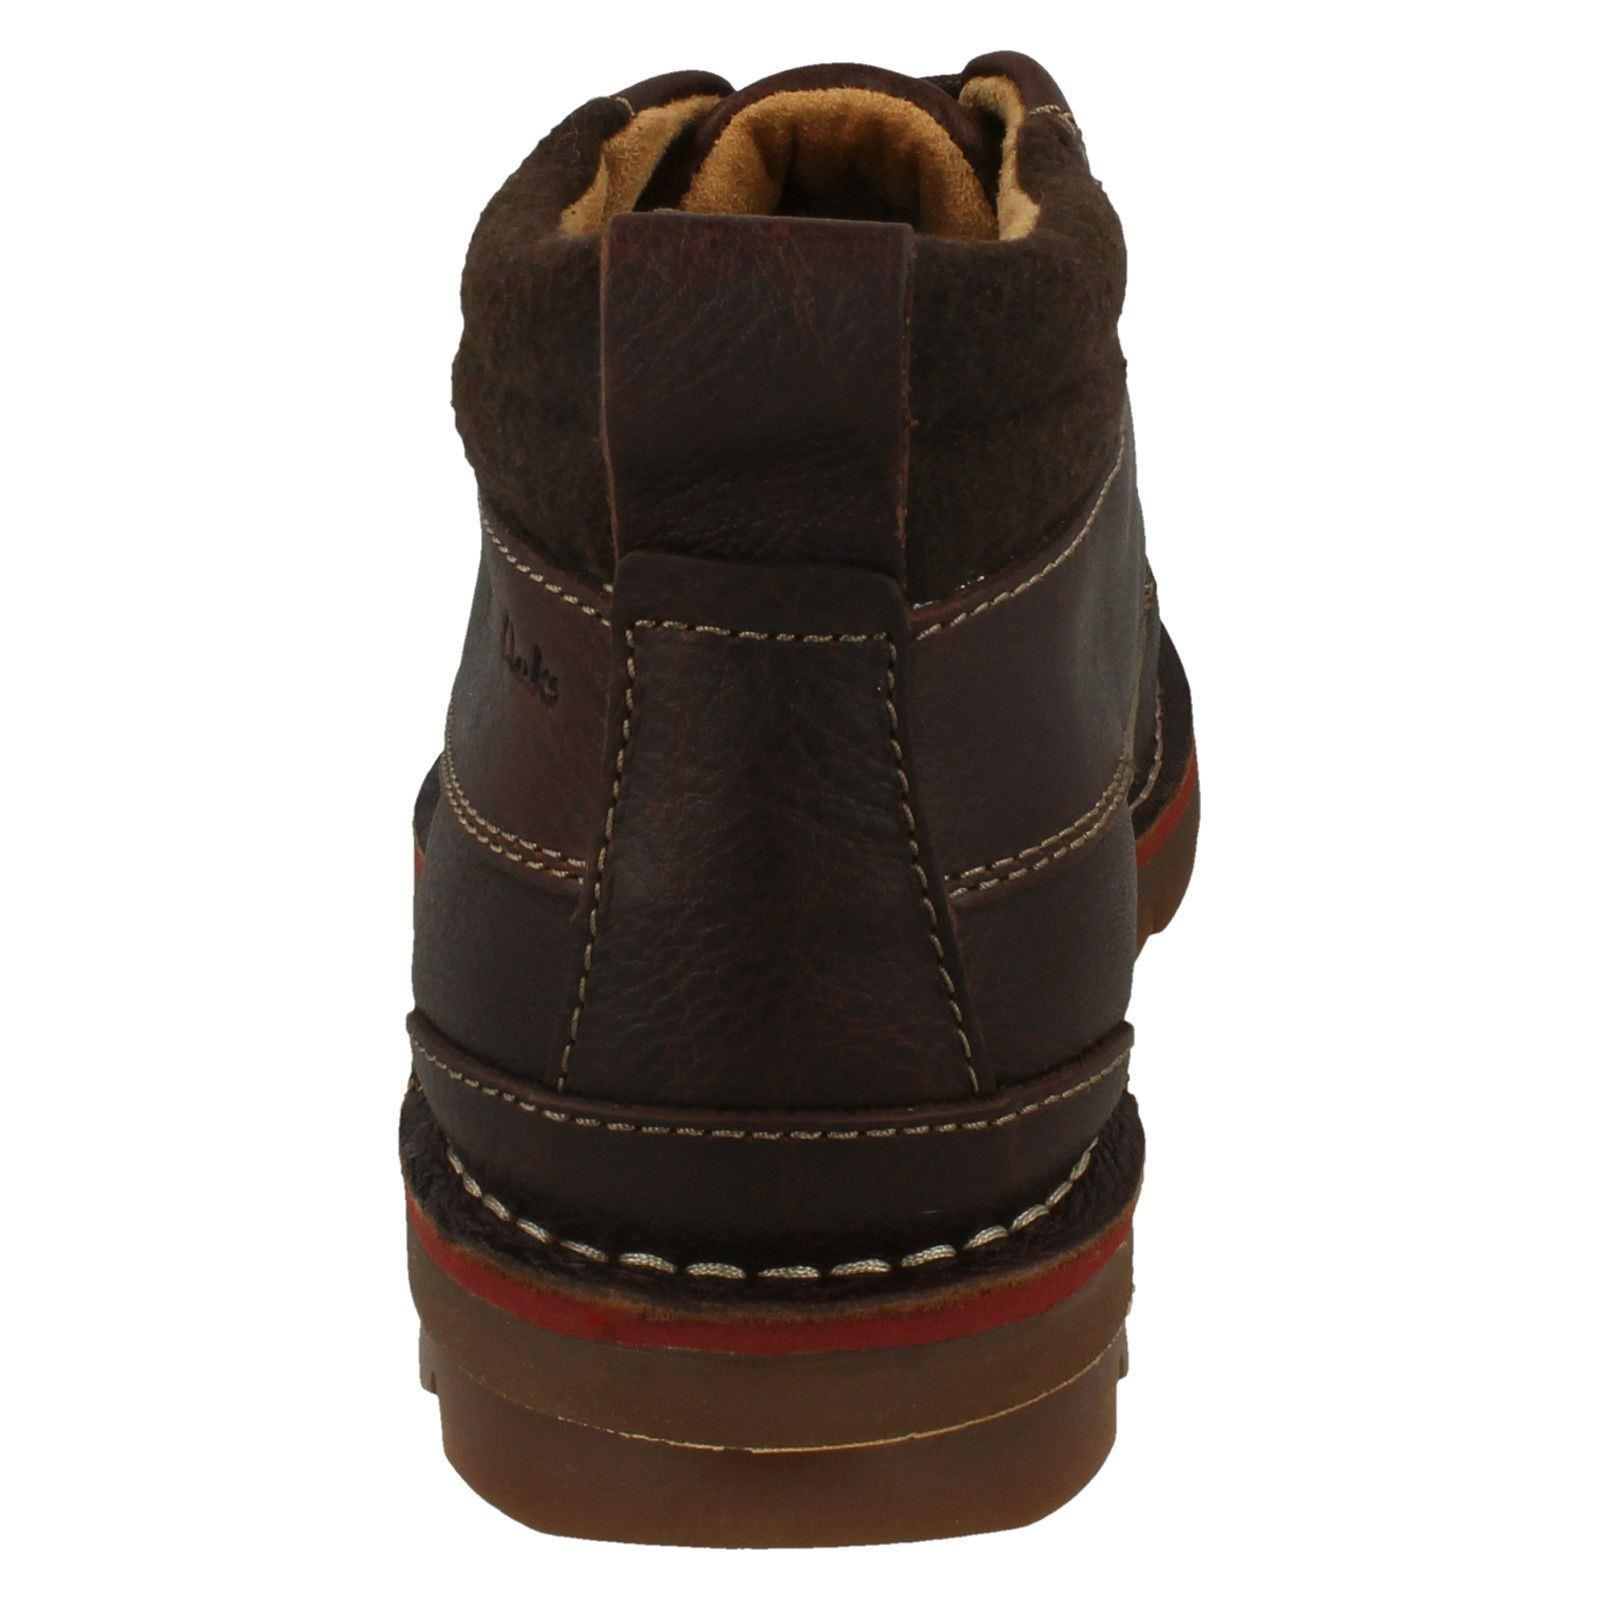 Mens-Clarks-Warm-Lined-Casual-Boots-039-Varick-Heal-039 thumbnail 7